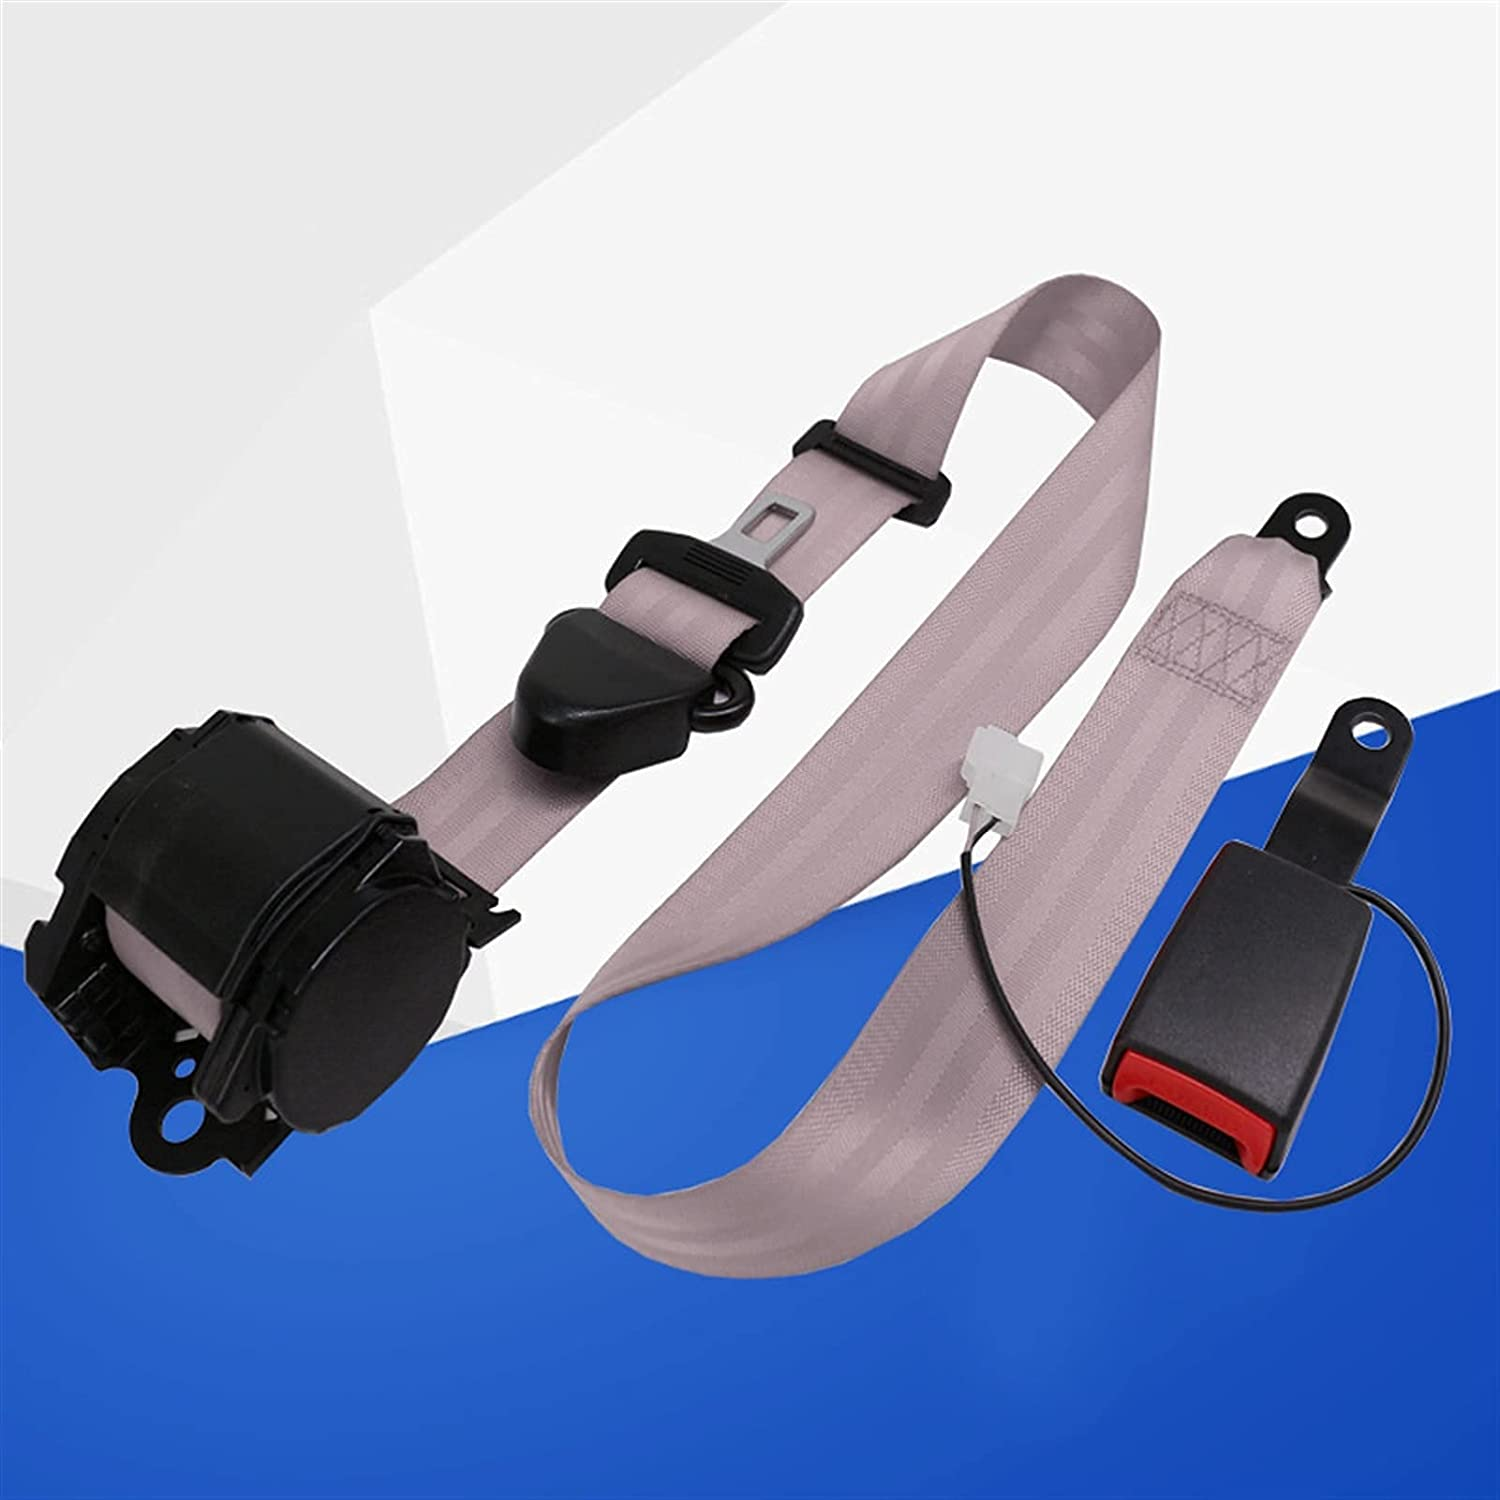 PARTAS Adjusters Lap Safety Belt Curved Discount is also OFFer underway Rigid Buc Seatbelts with